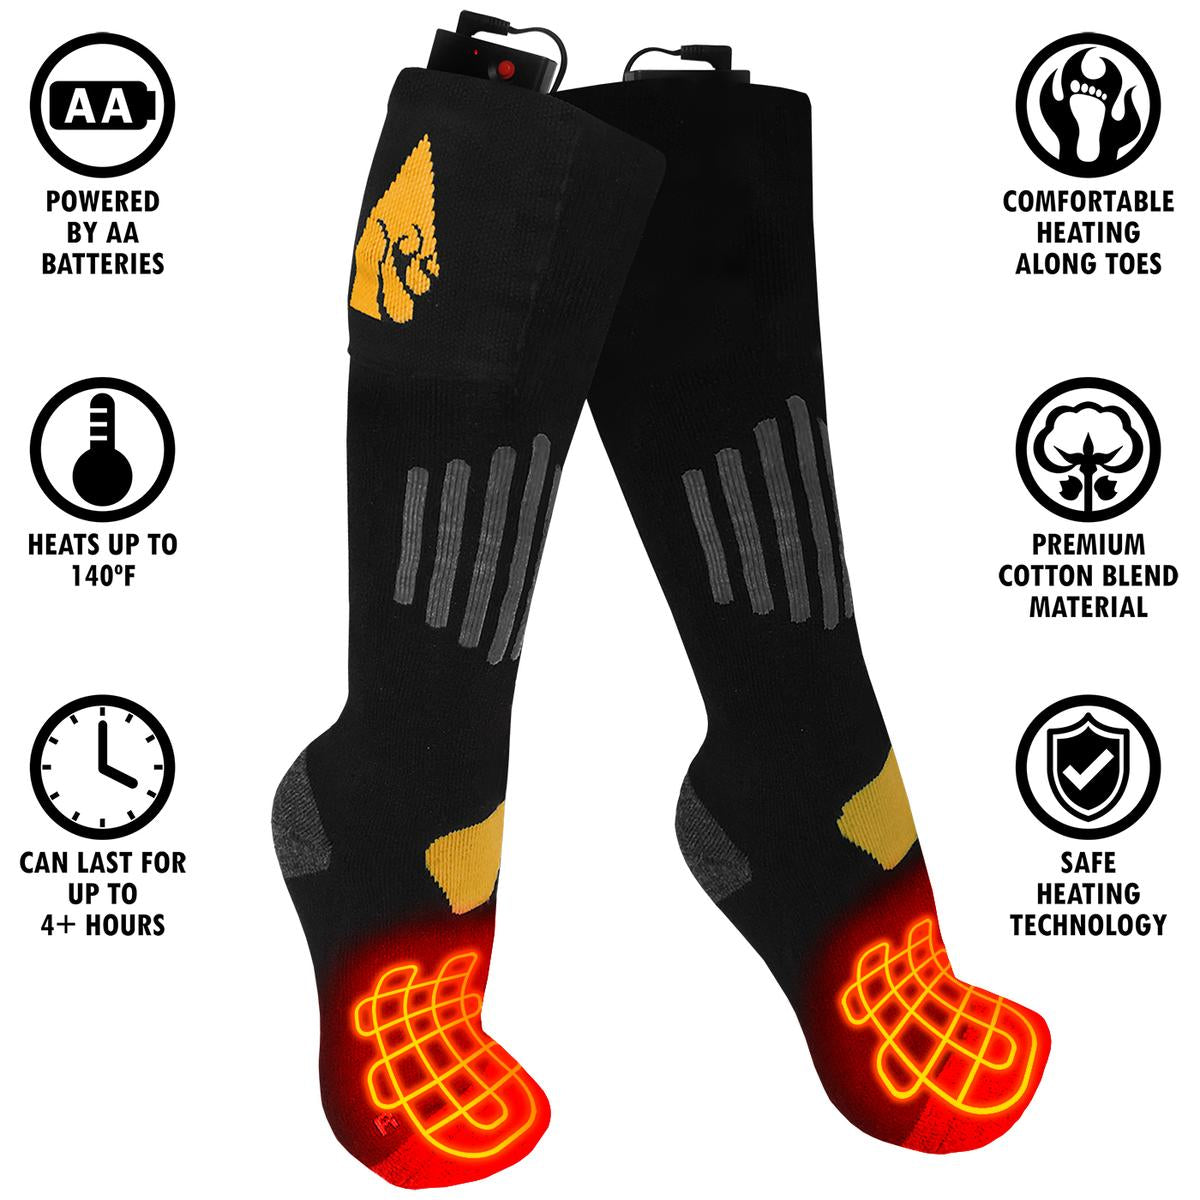 ActionHeat Cotton AA Battery Heated Socks - Replacement Socks Only - Back